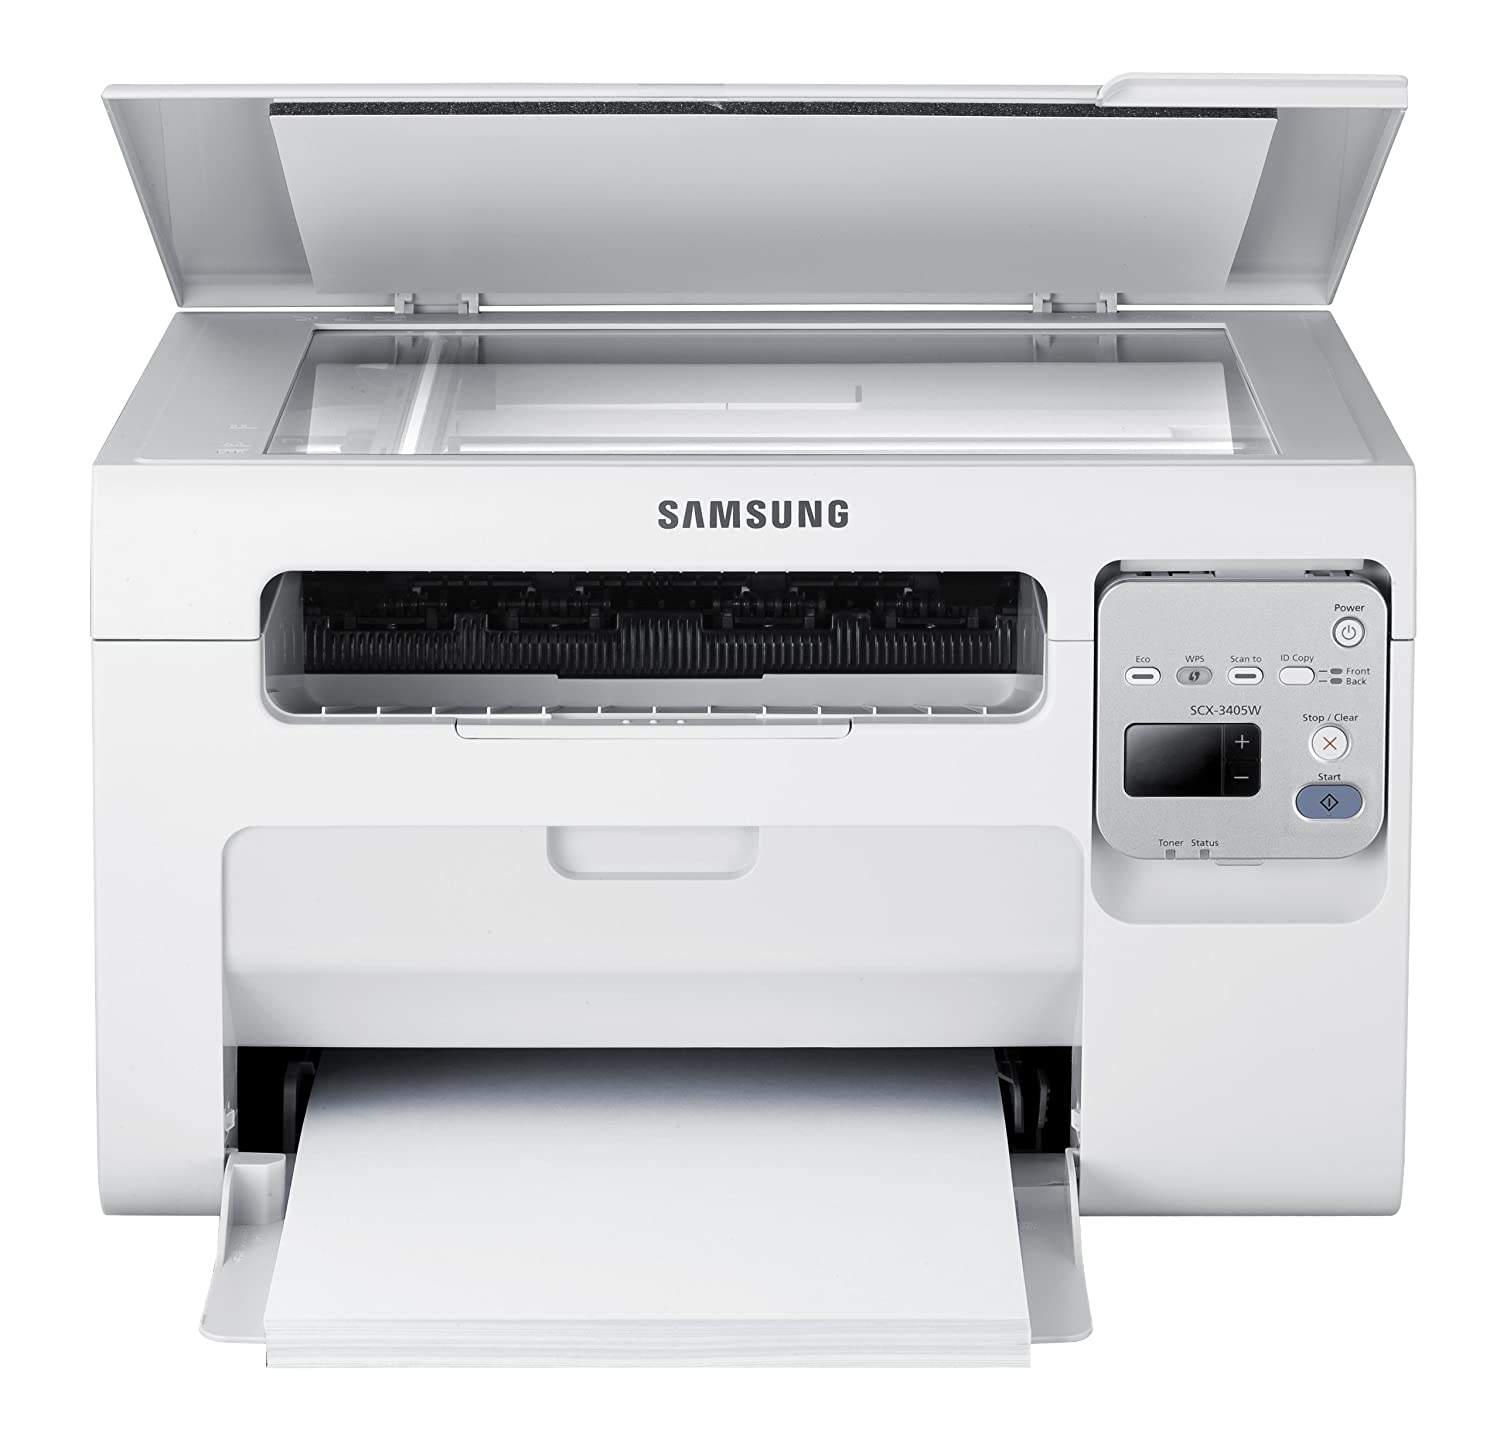 Samsung SCX-3405FW MFP Add Printer Drivers for Windows XP